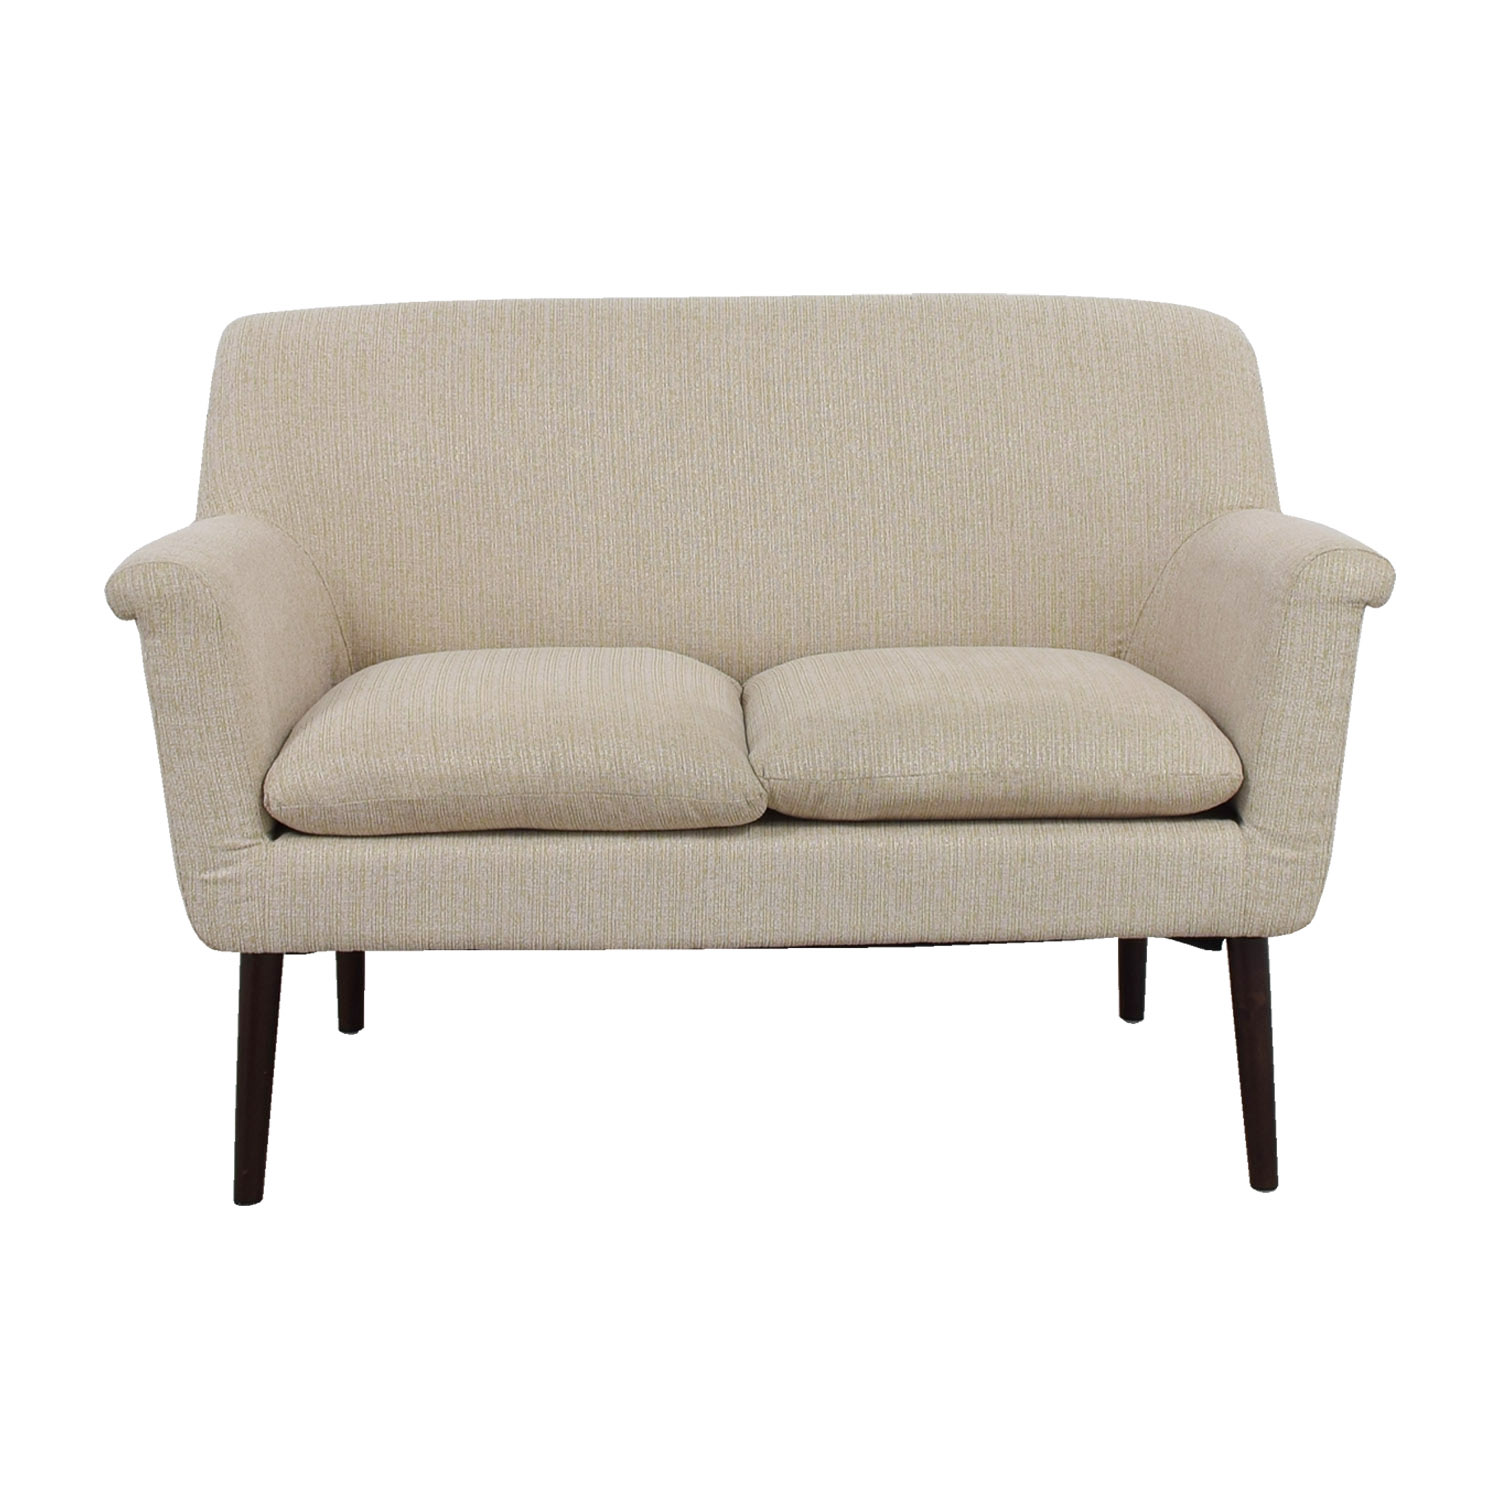 shop Madison Park Davenport Madison Park Davenport Beige Rolled-Arm Settee online